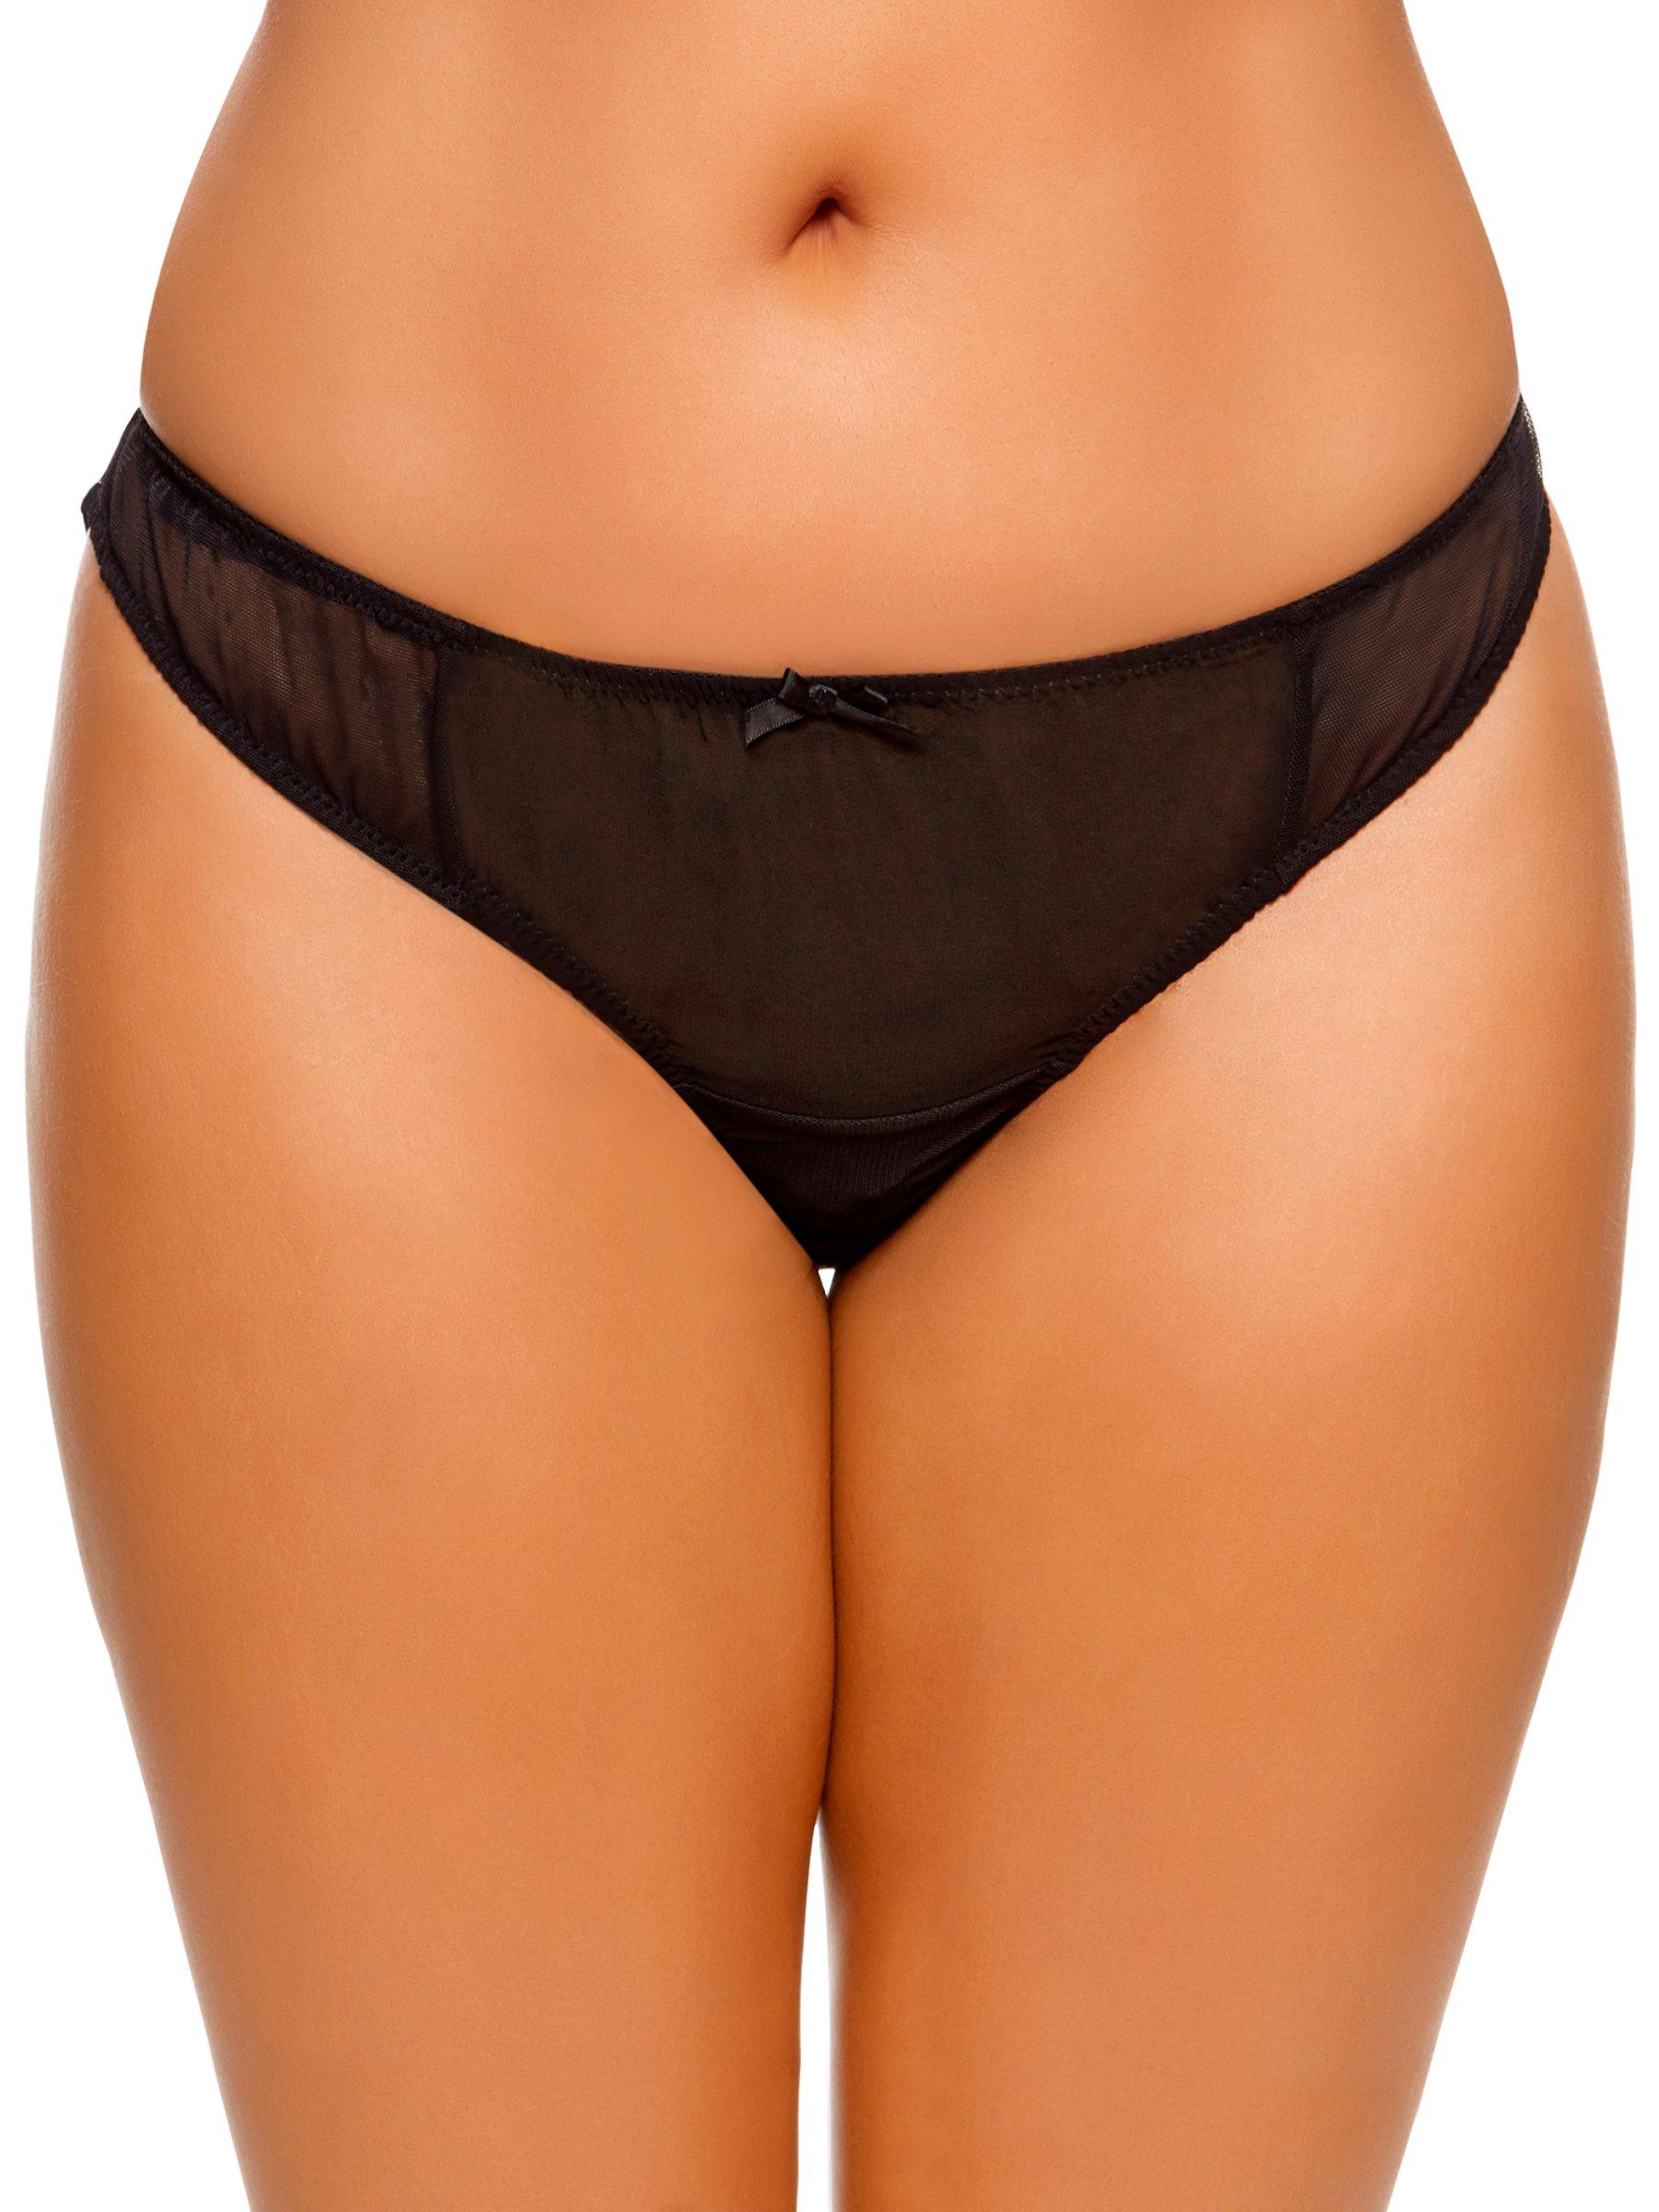 Panties Trustful Ann Summers Veena High Waist Crotchless Brief With Choker Black 10 12 New Tags